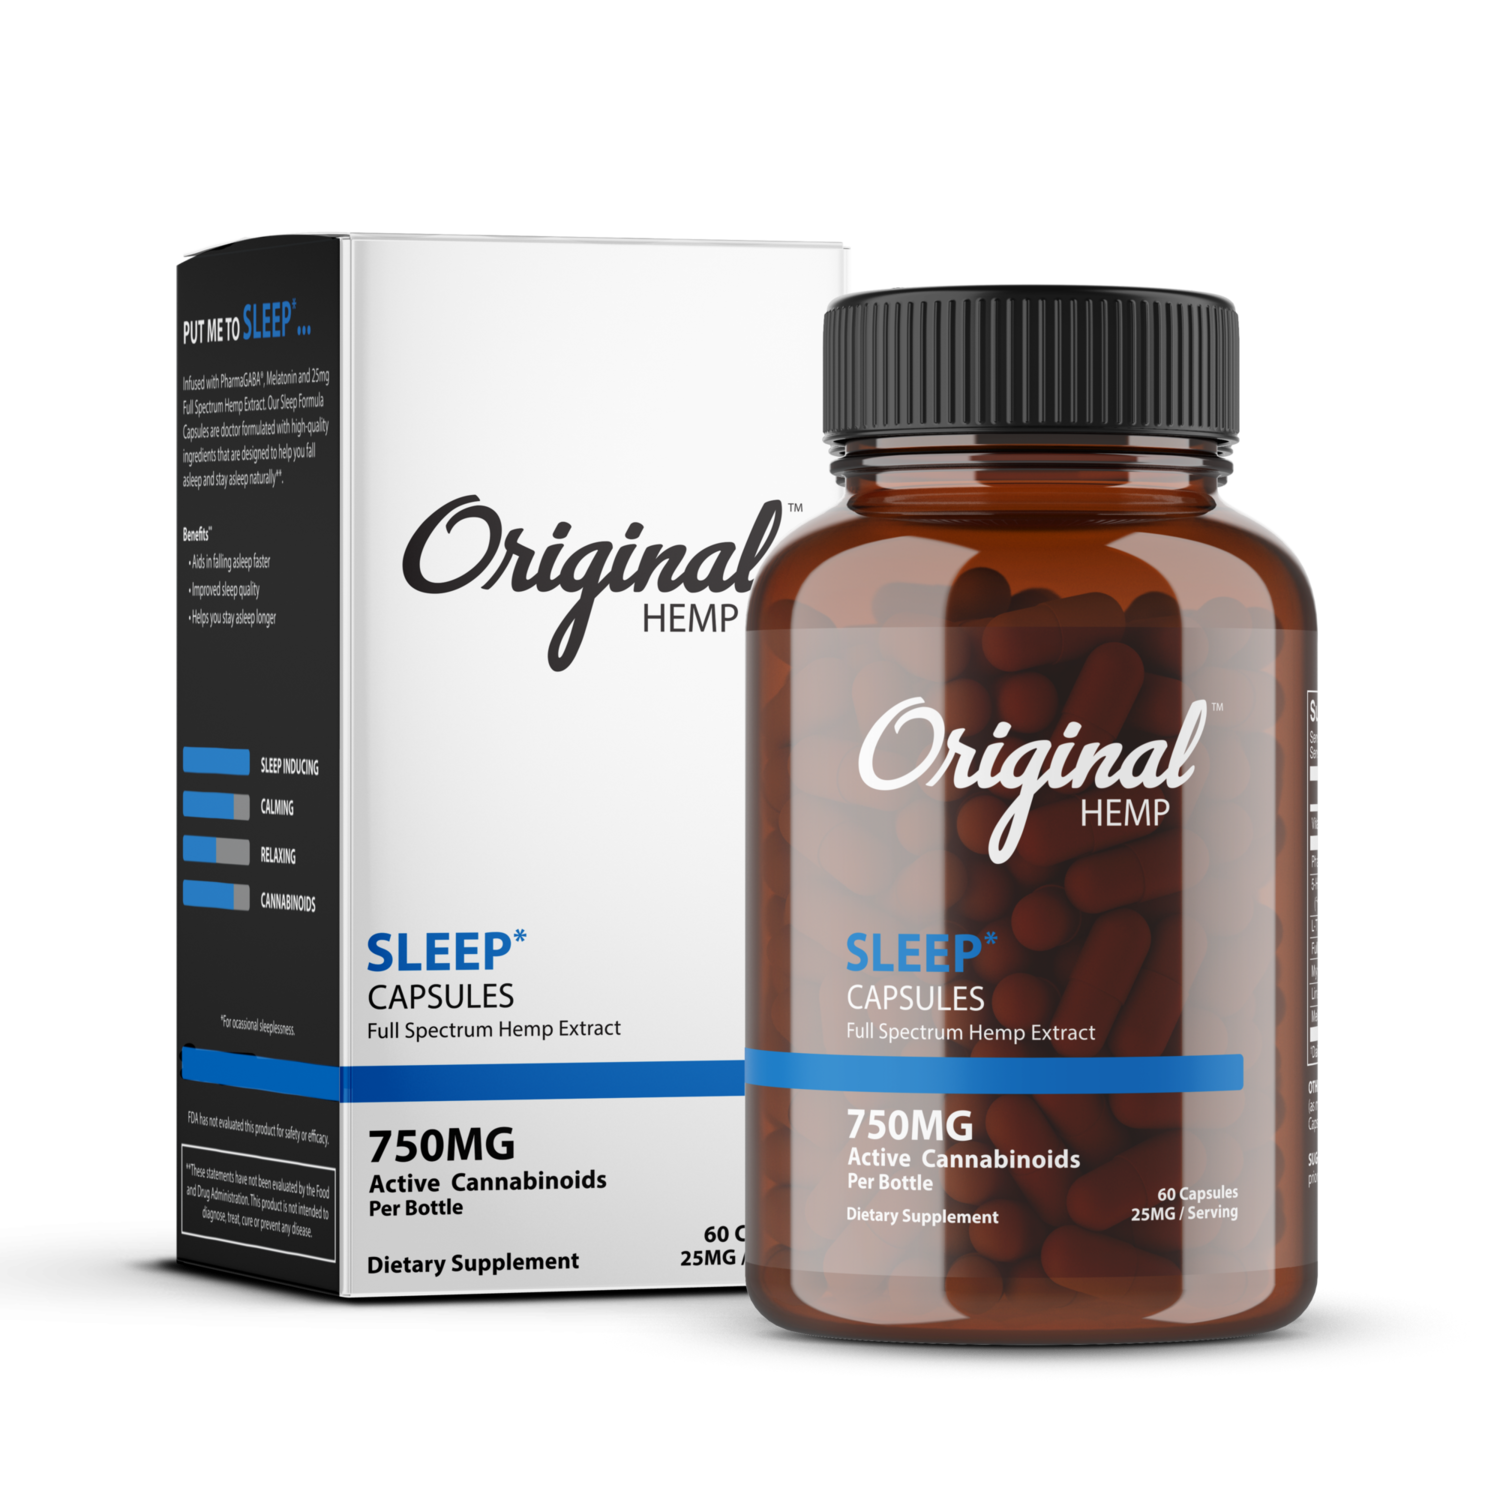 Original Hemp Sleep Capsules 750mg 60ct